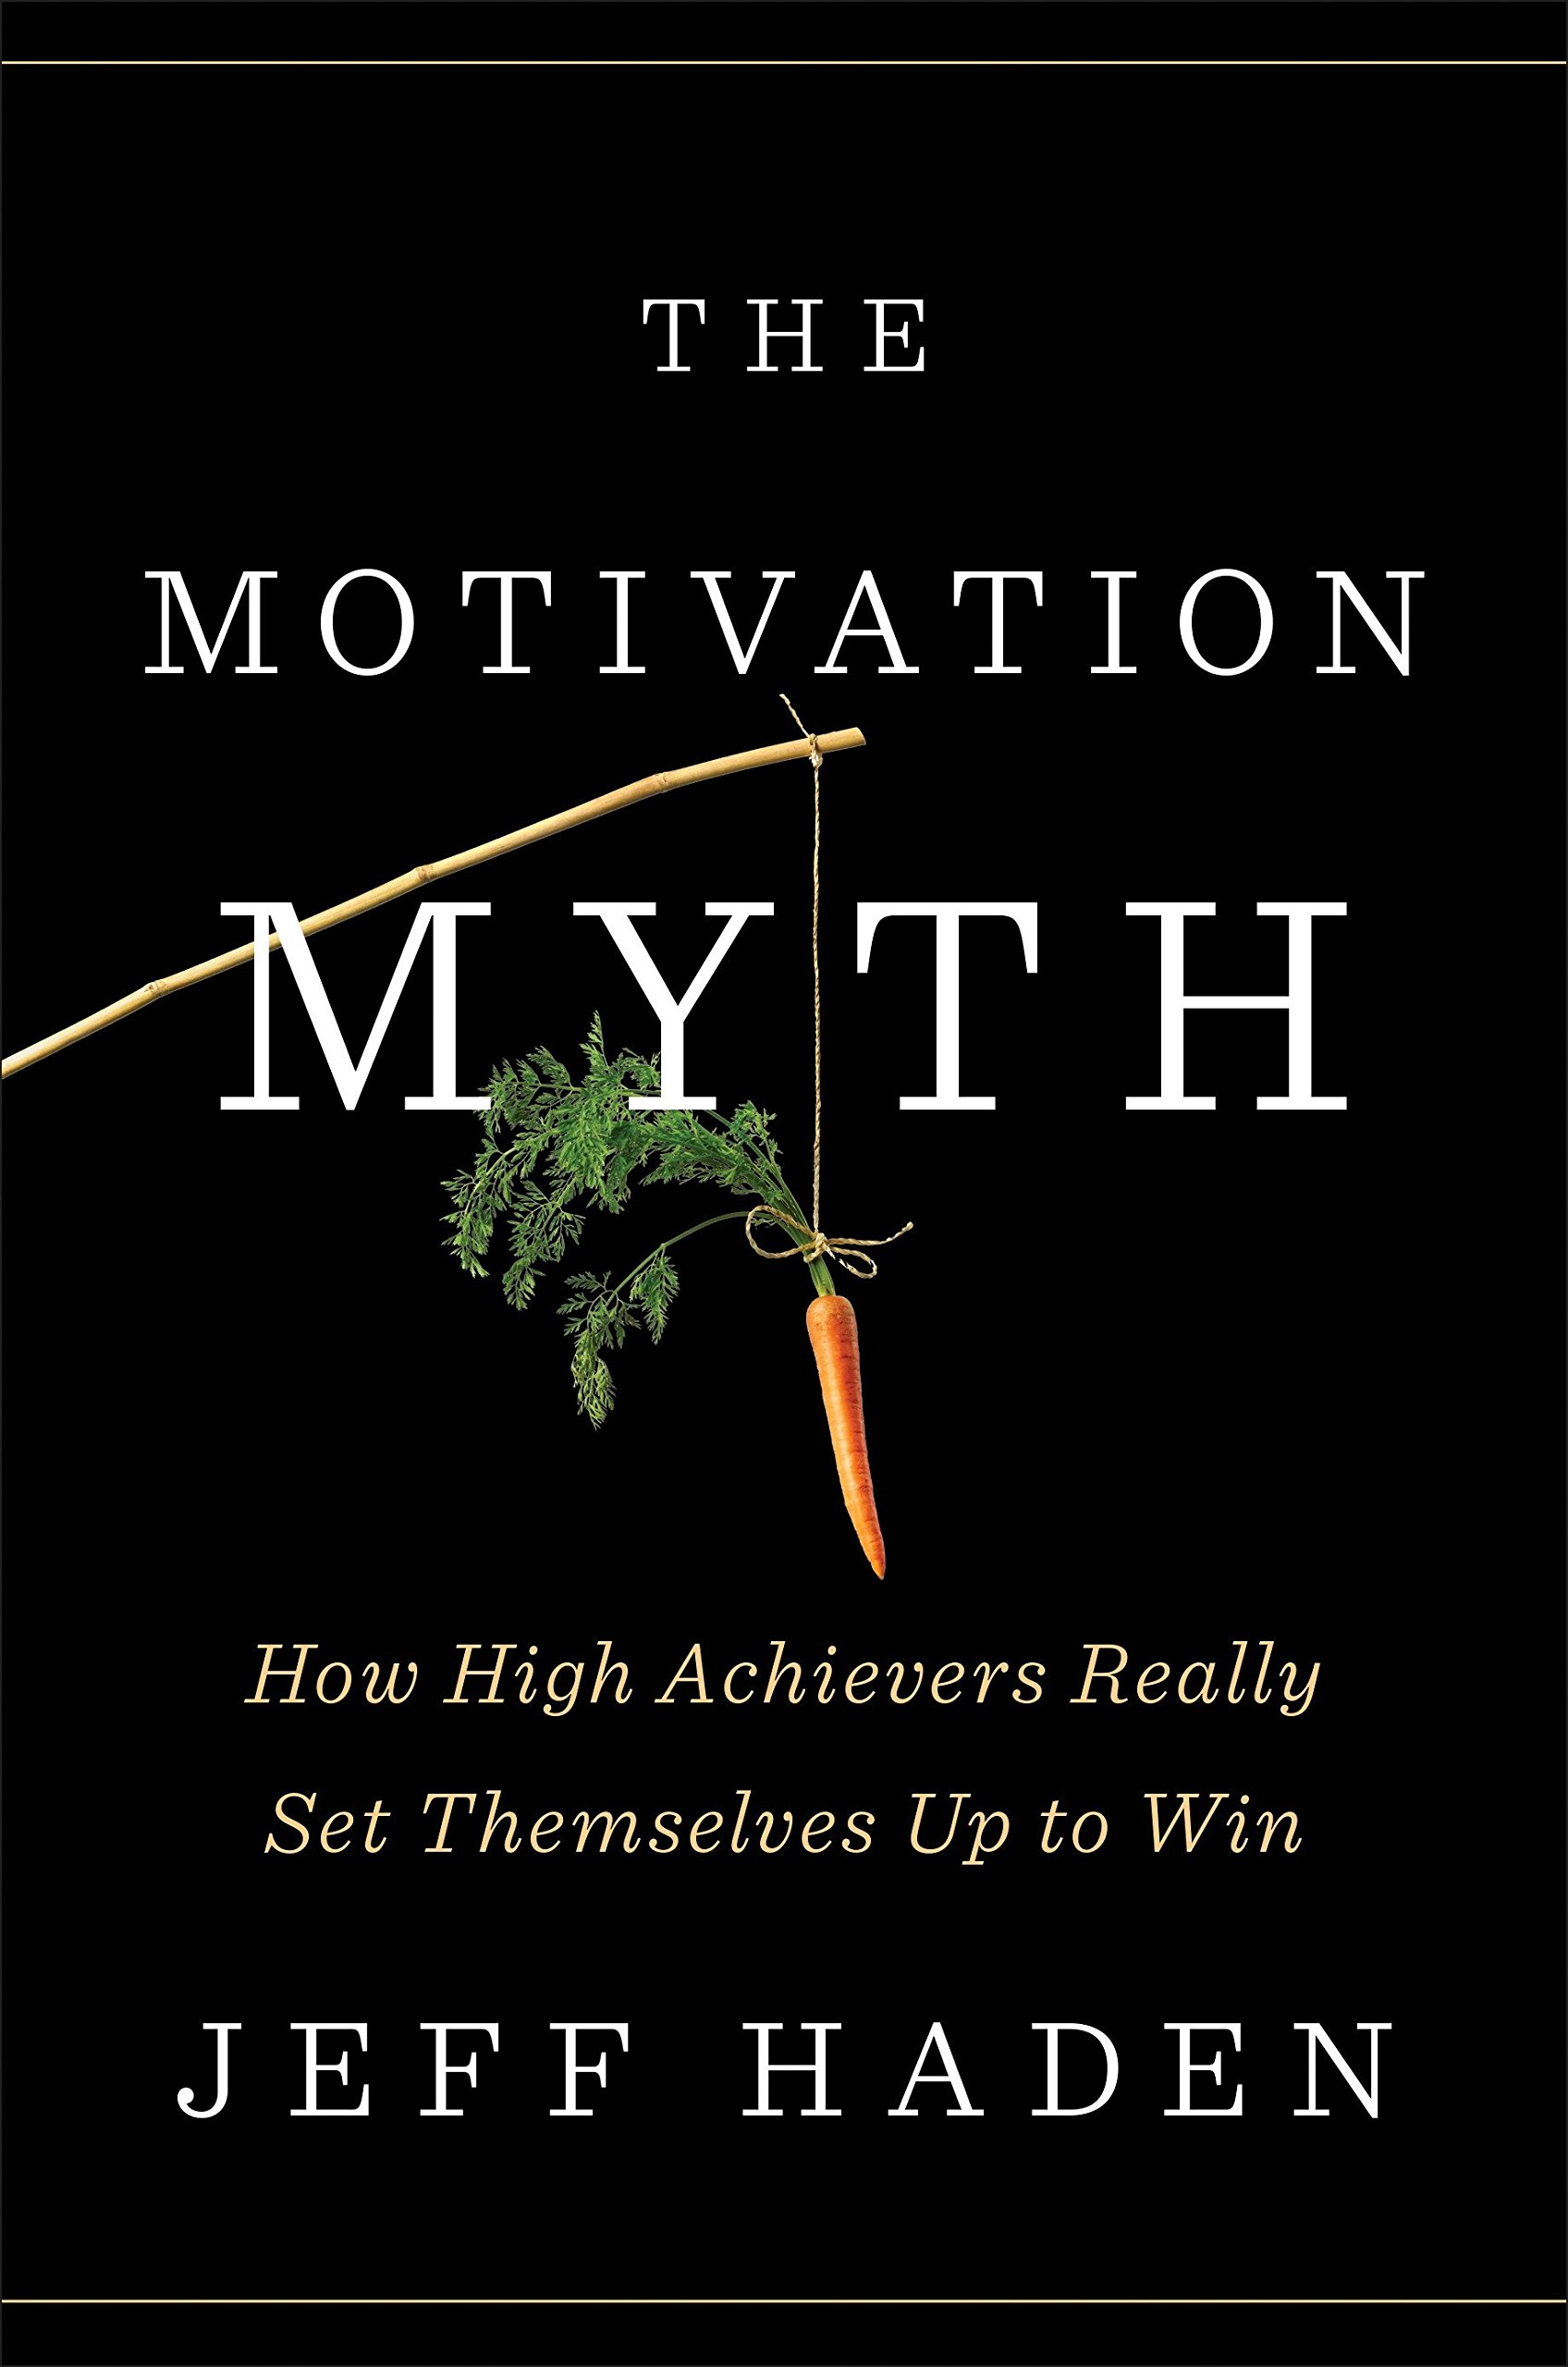 Image result for The Motivation Myth by Jeff Haden